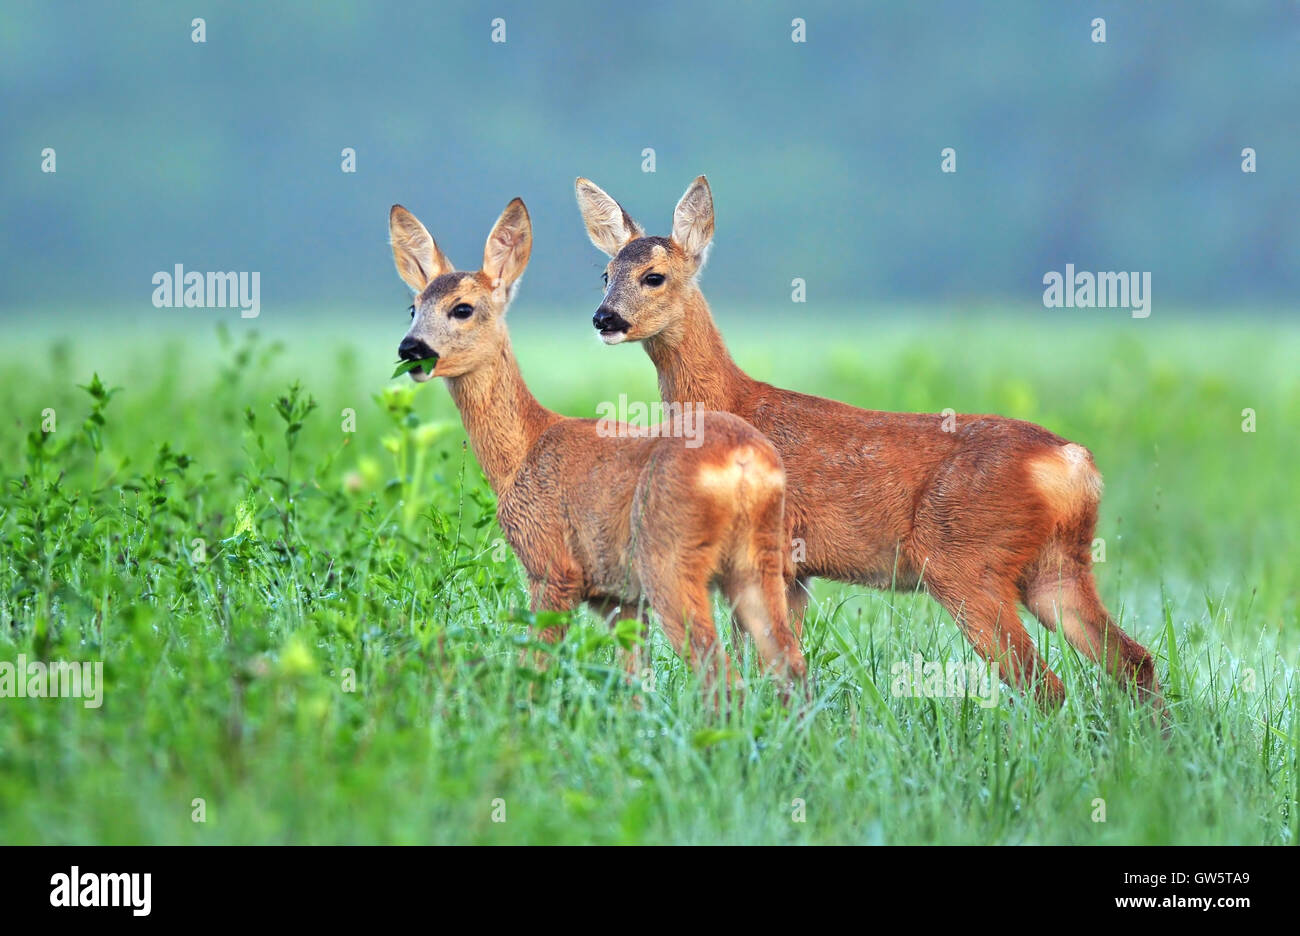 Two roe deer cubs in a field - Stock Image